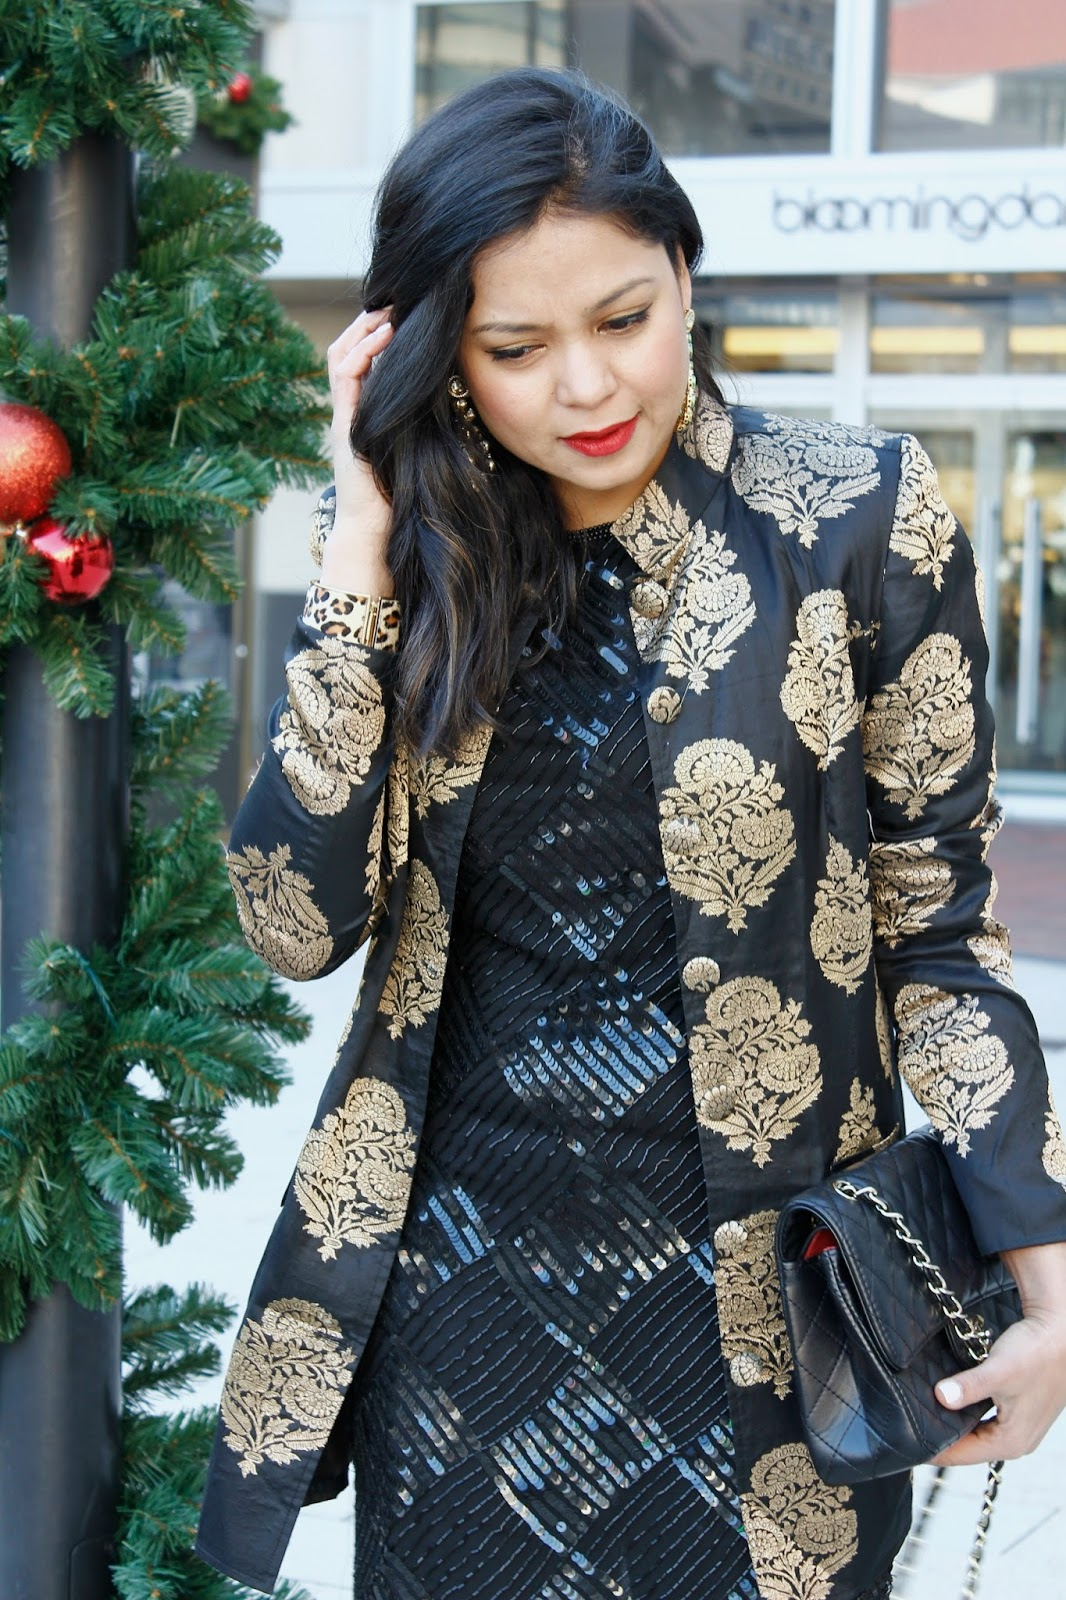 sequin. brocade, red heels, chanel bag